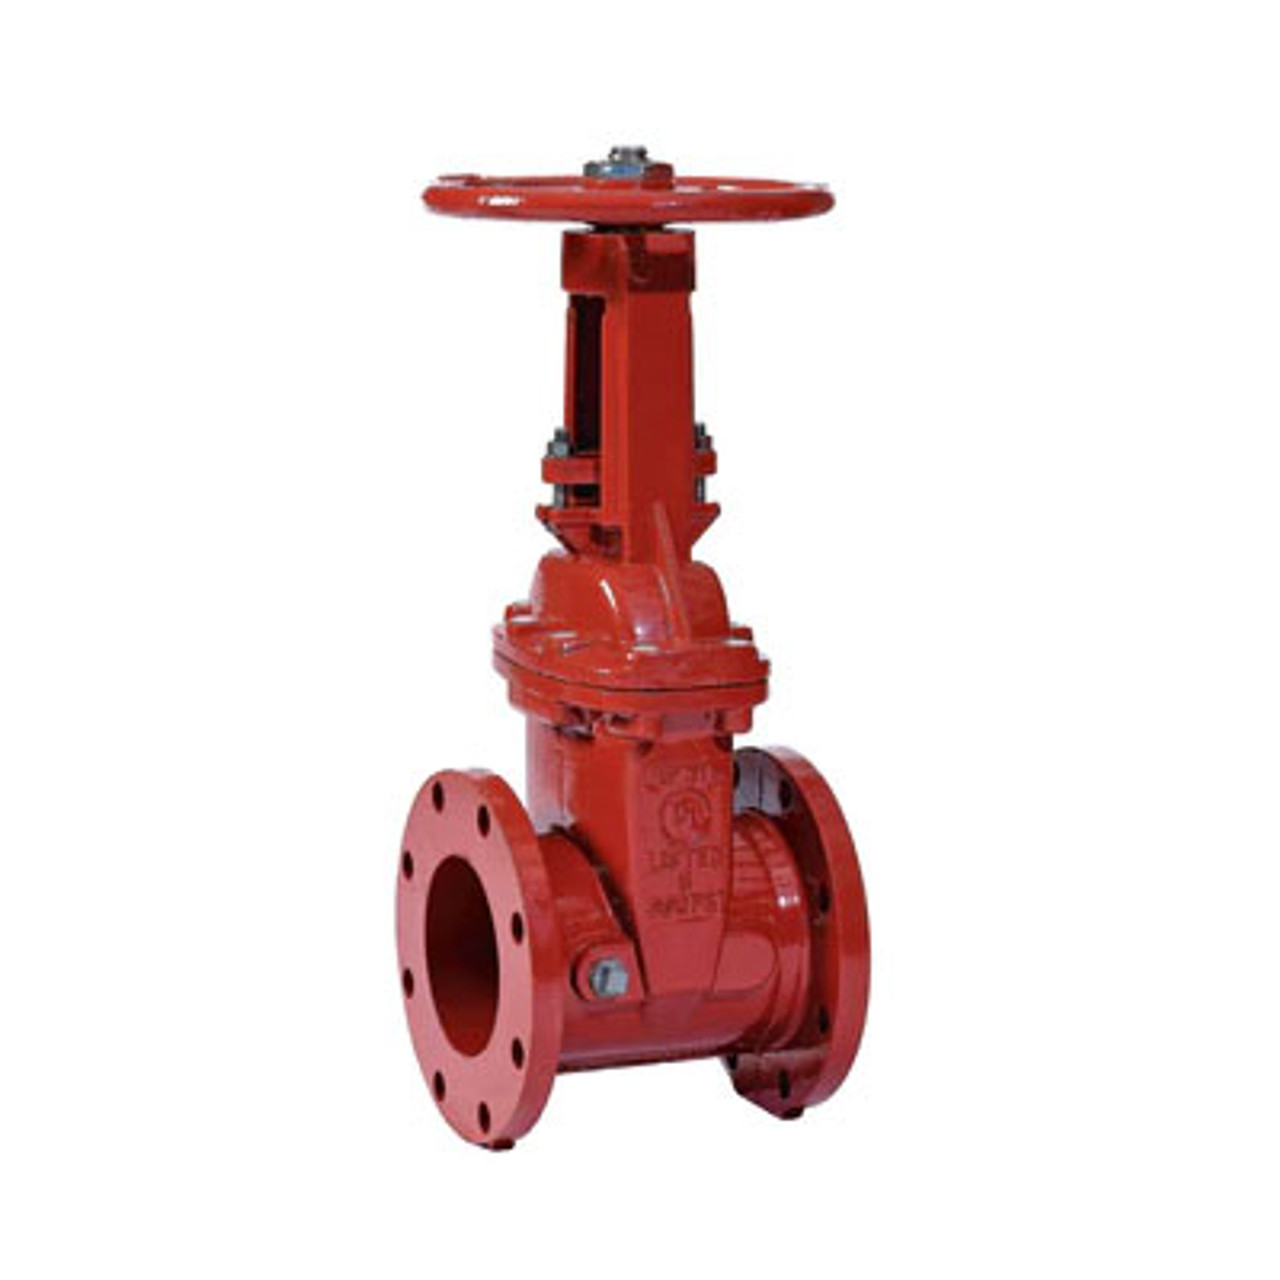 Fire Protection Valves Os Amp Y Gate Valves 2 1 2 Quot 300